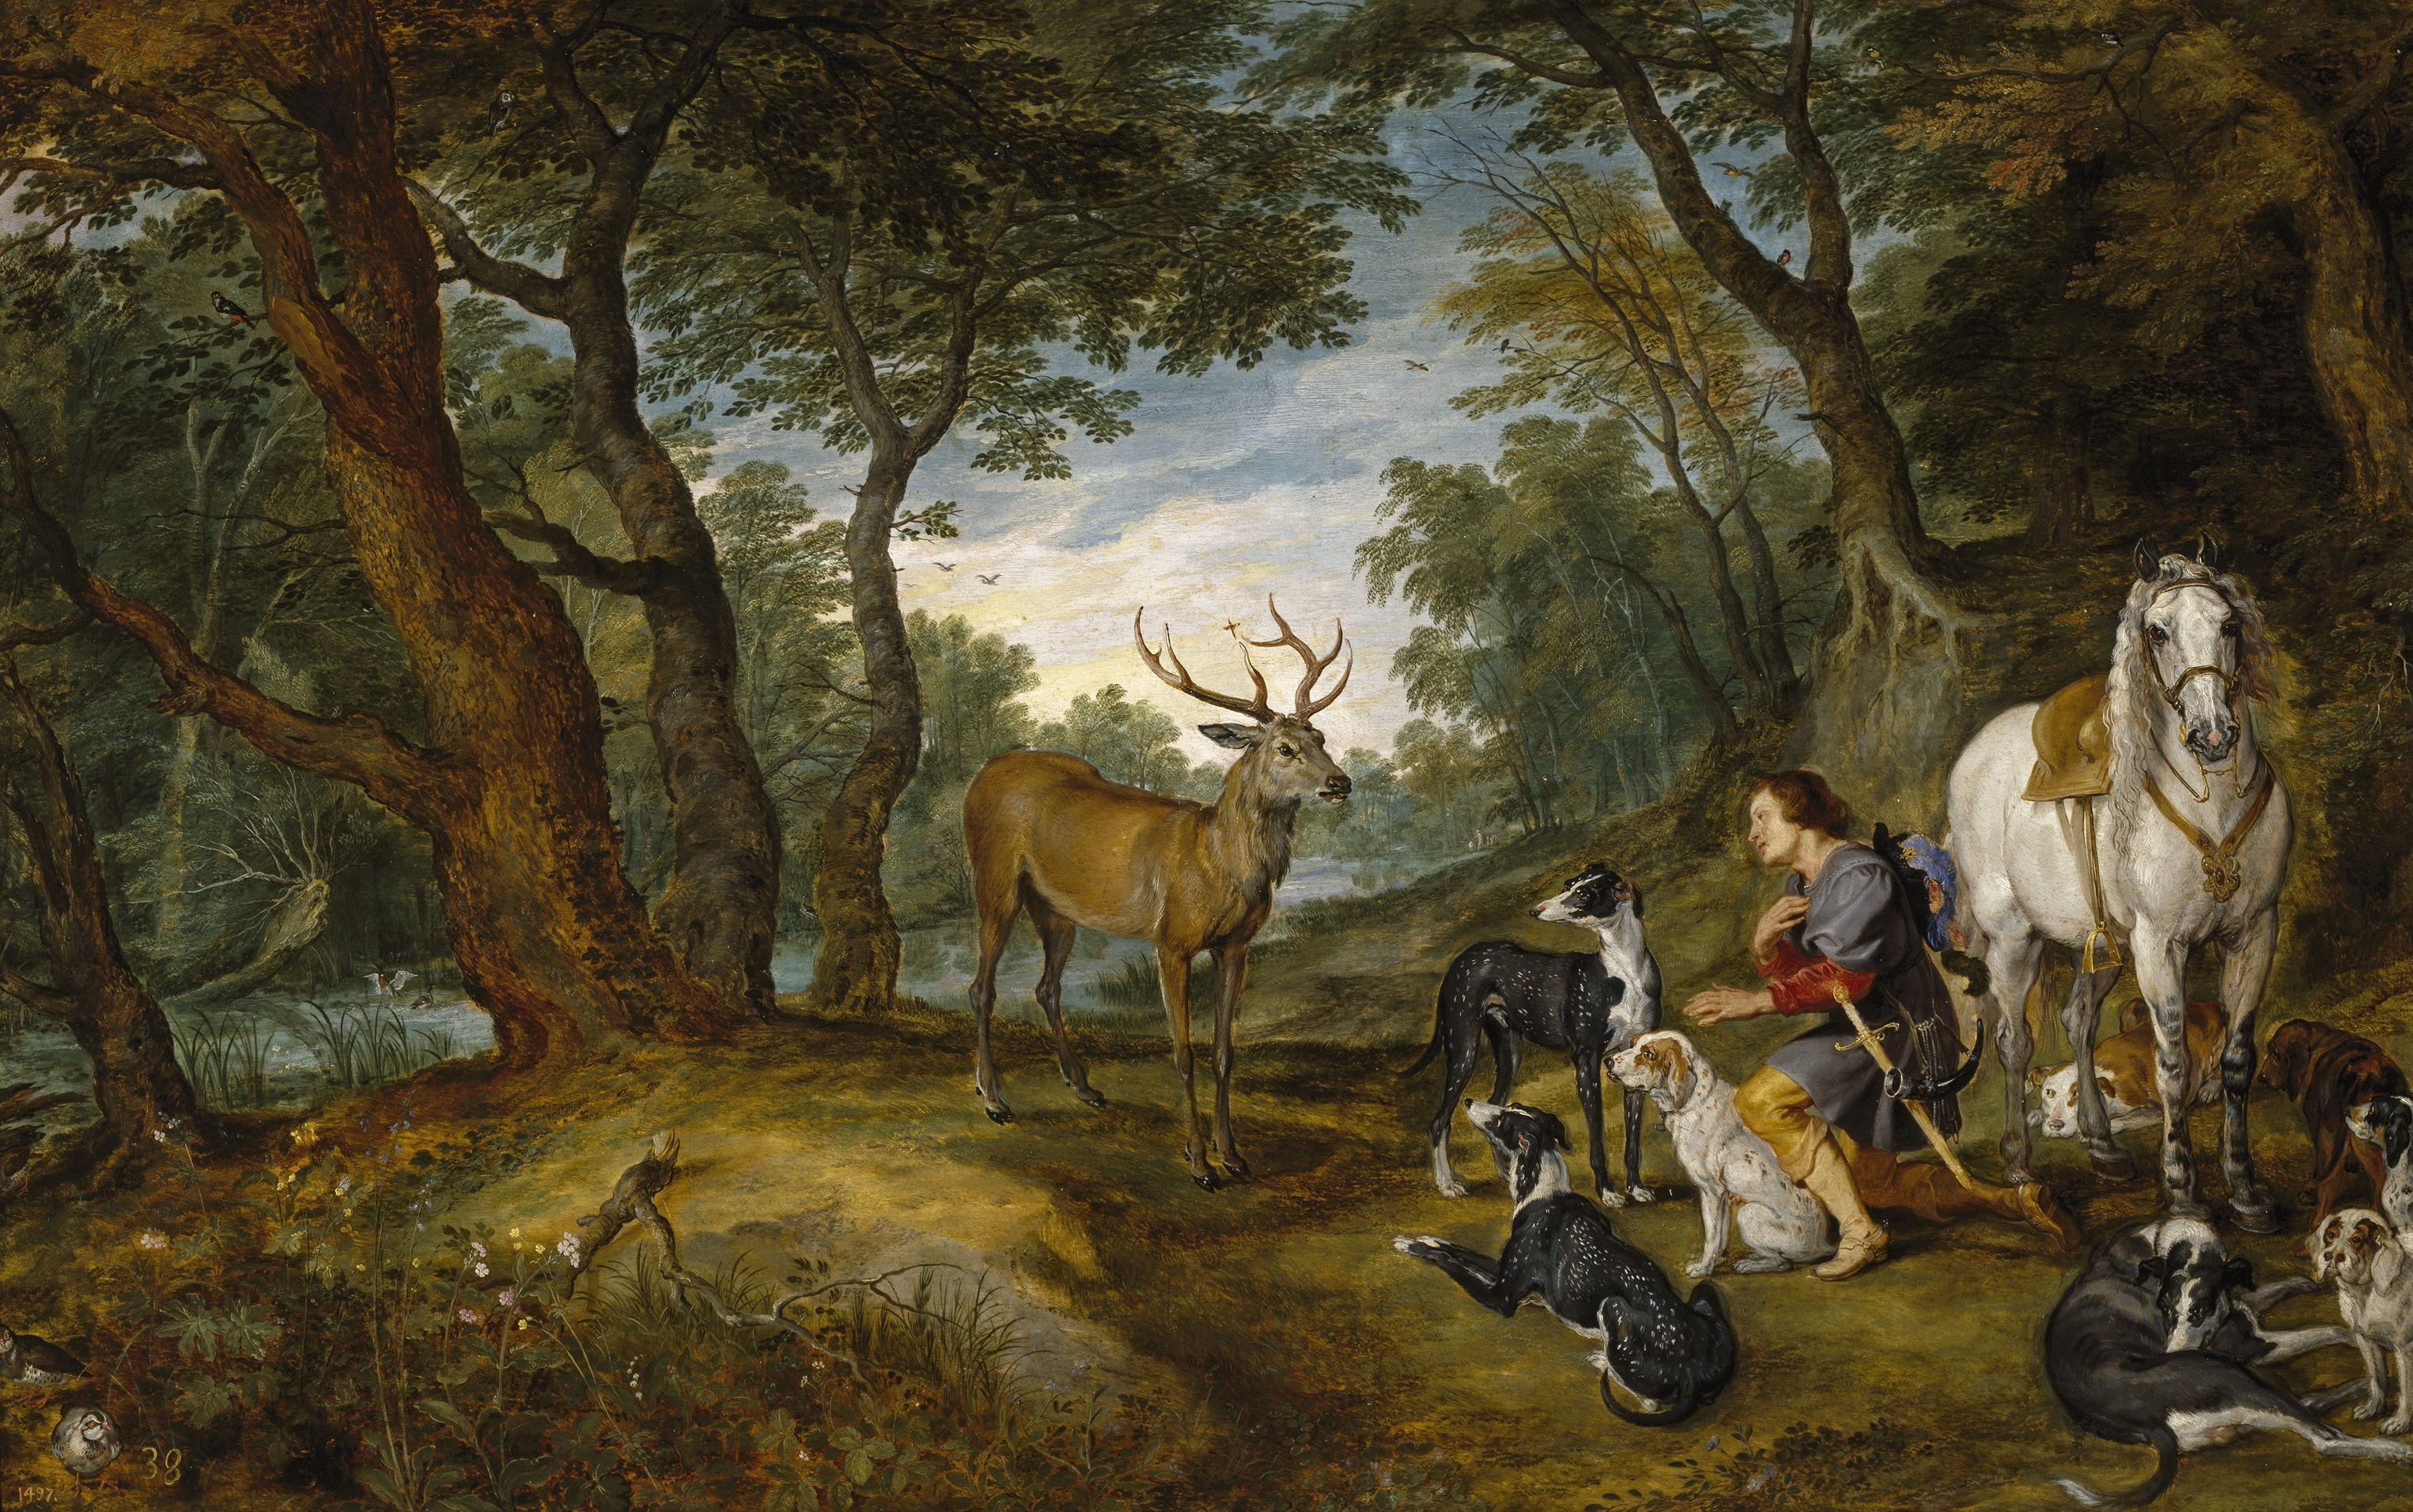 The Vision of St. Hubert, by Jan Brueghel and Peter Paul Rubens; taken from Wikipedia